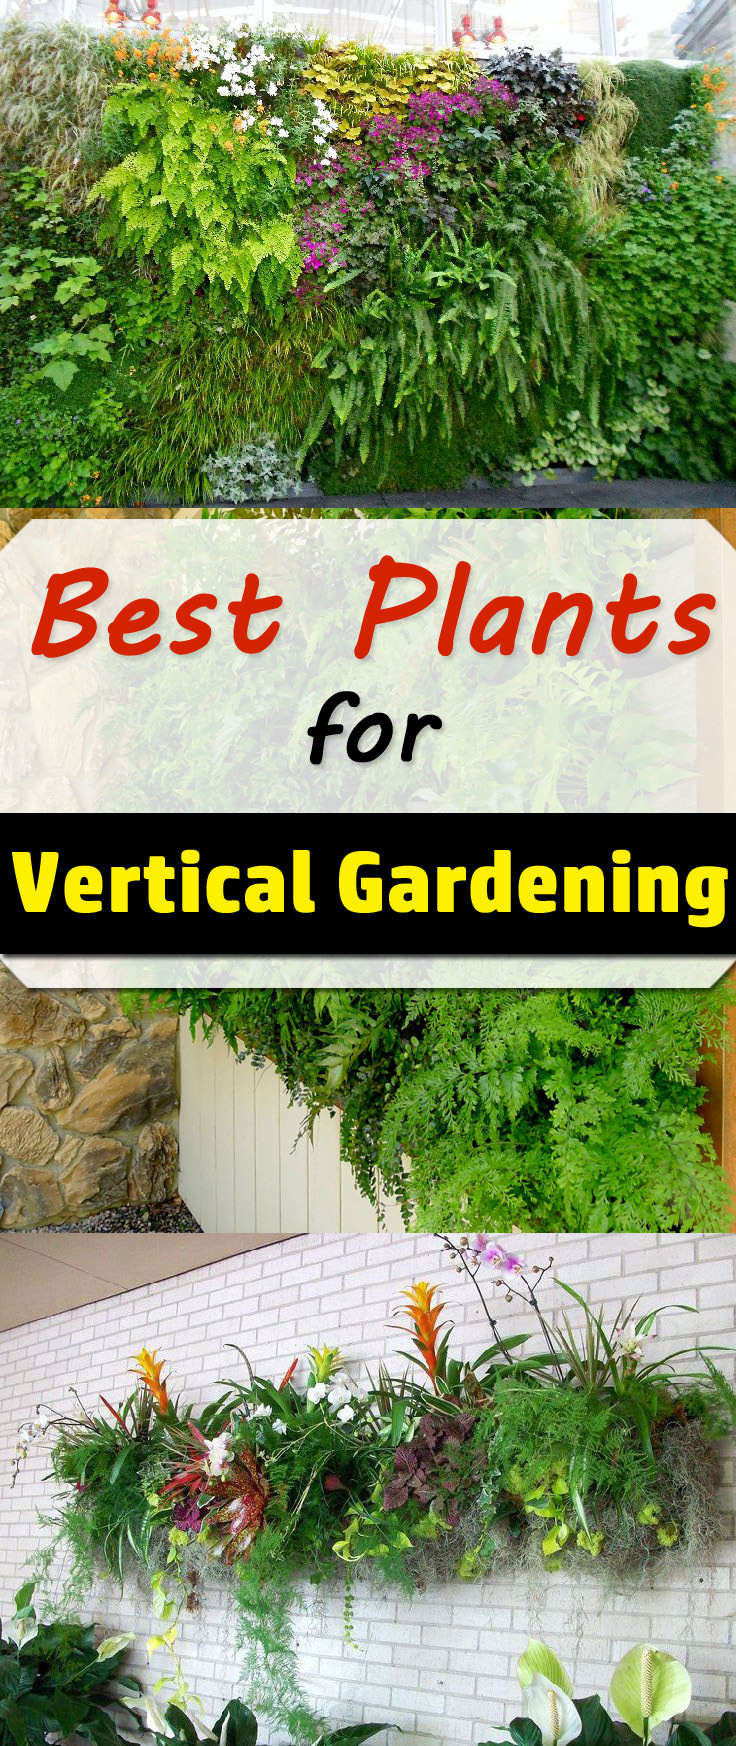 The correct selection of plants plays an important role in the design and functioning of vertical living wall gardens. In this article, we show a selection of the best plants for vertical gardening.